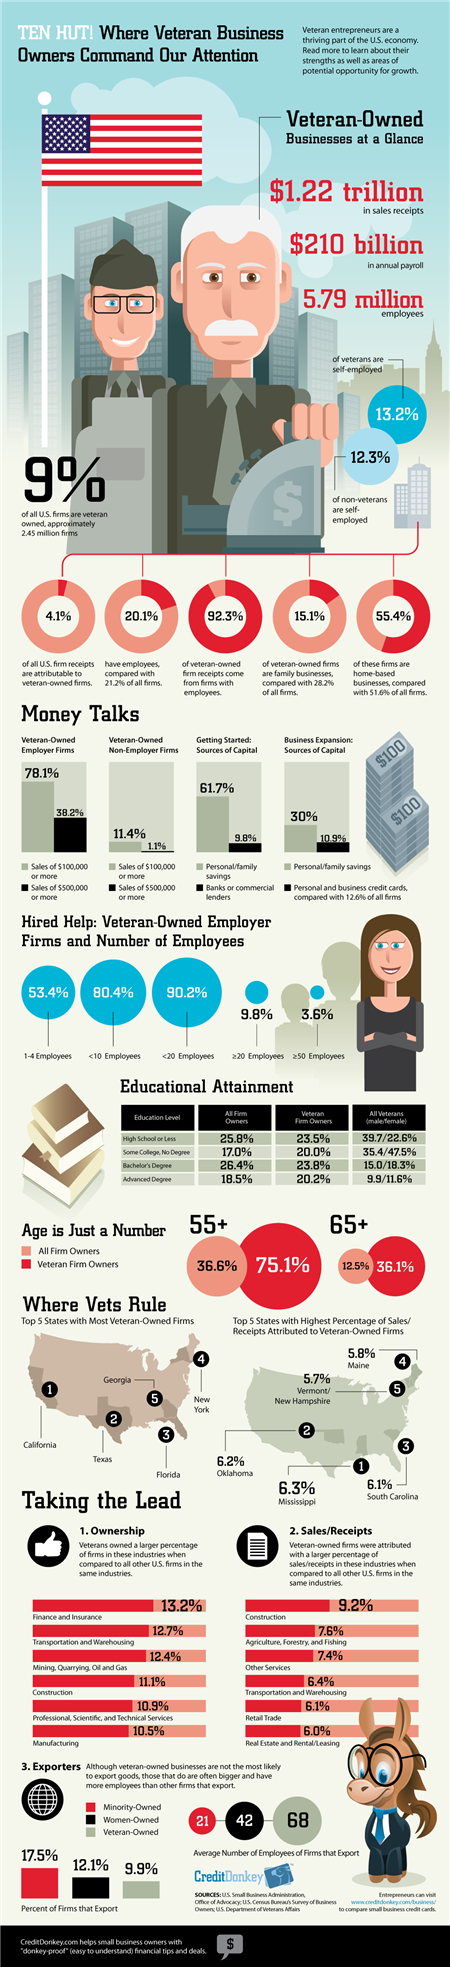 Infographic: Veteran Business Owners